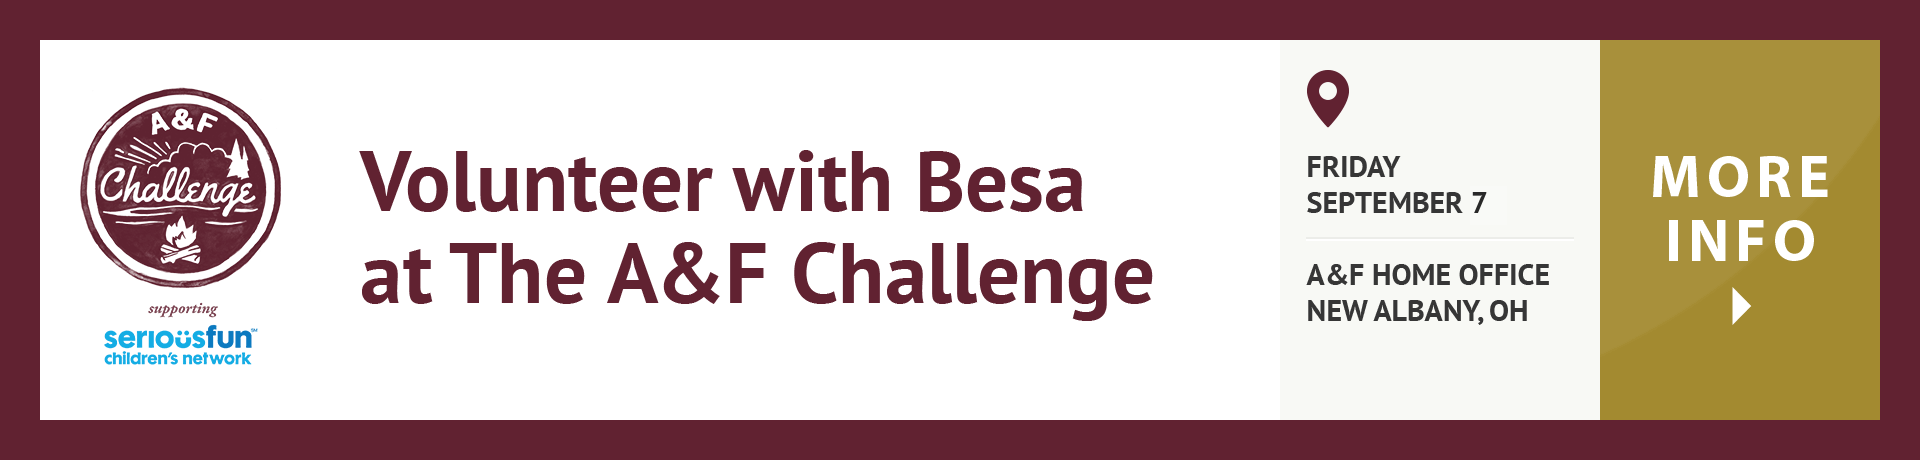 Volunteer With Besa At The A&F Challenge